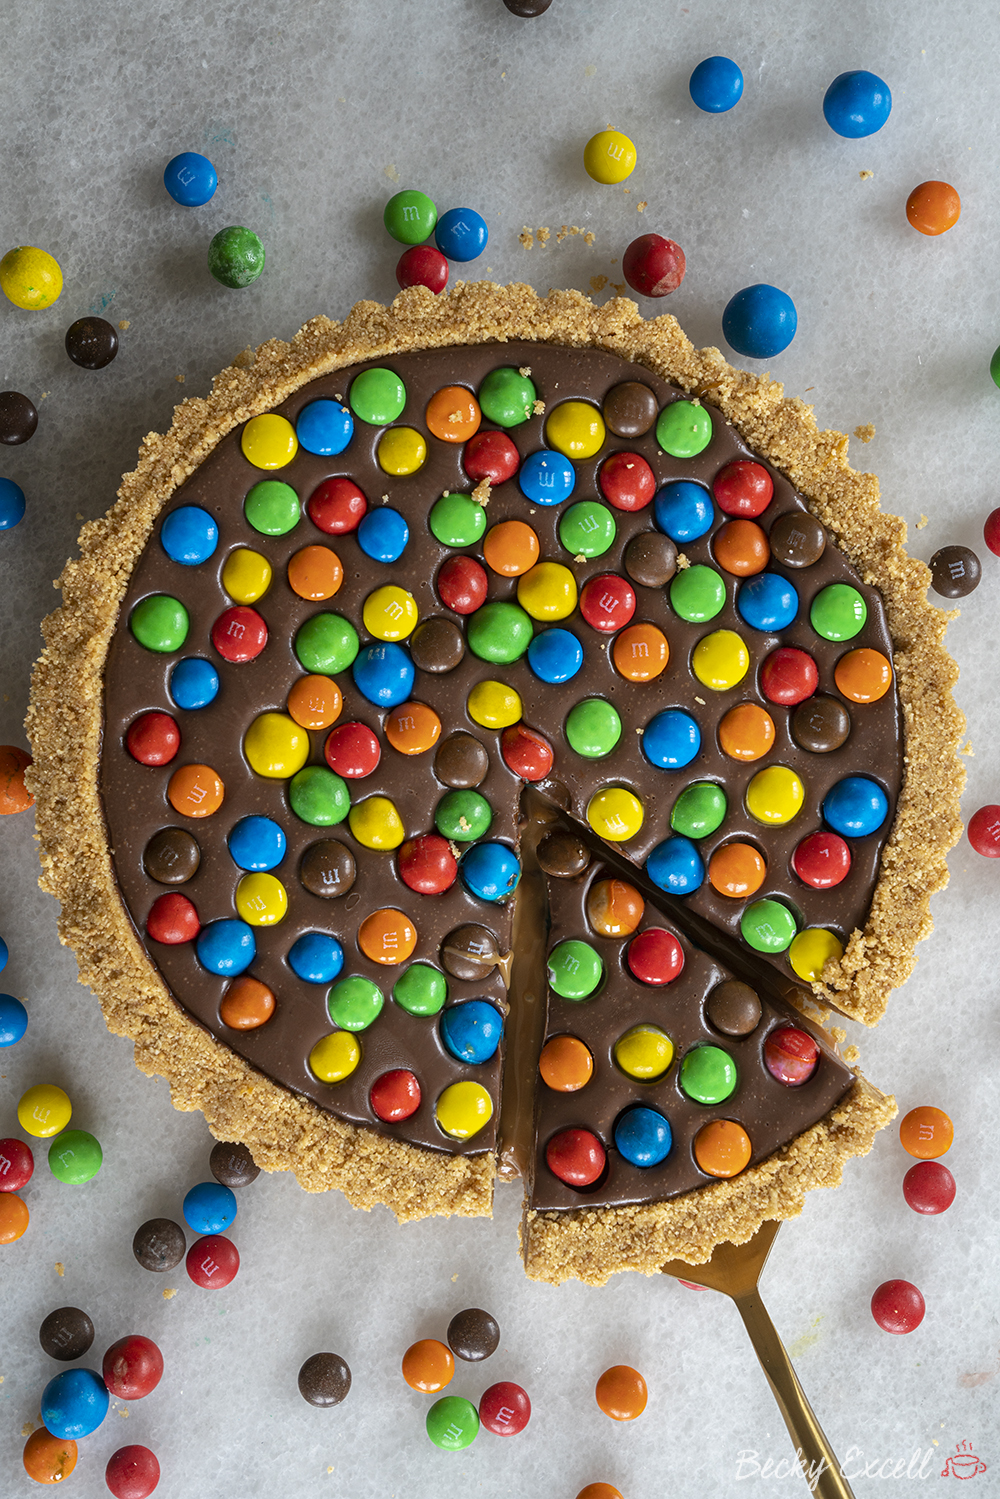 Gluten-free M&M's Salted Caramel Tart Recipe - No-bake